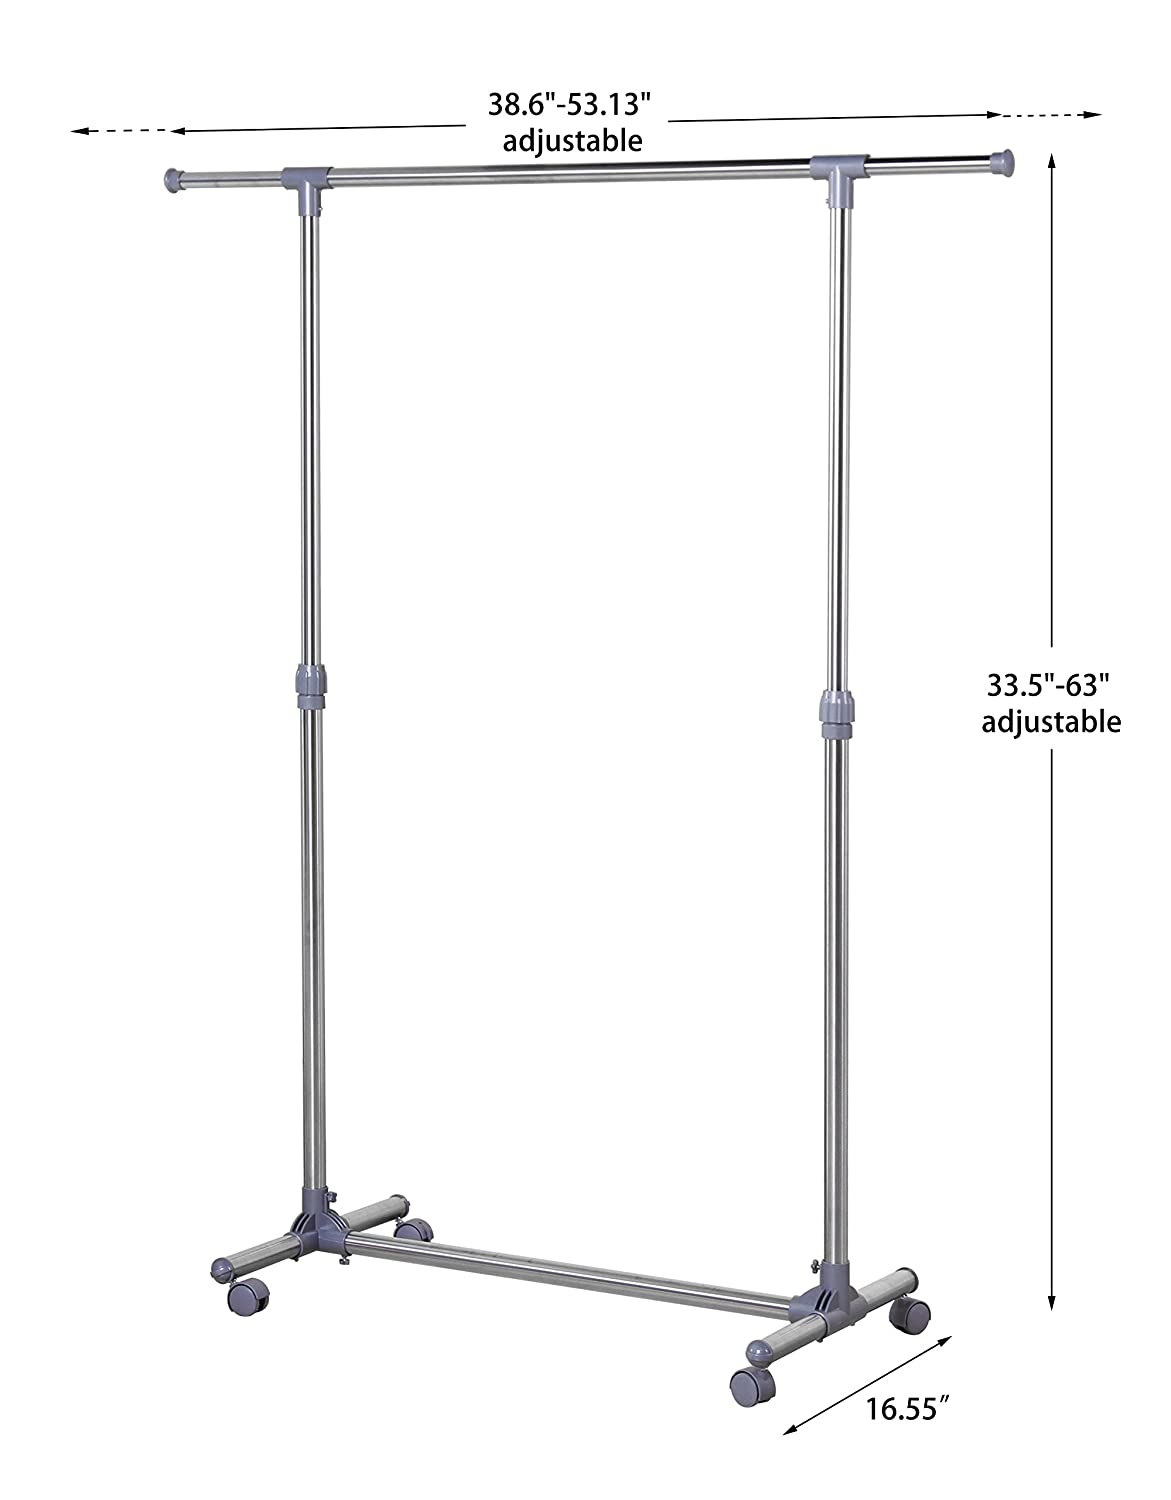 Extensible Clothing Hanging Rack with Industrial Wheels Finnhomy Stainless Steel Adjustable Rolling Garment Rack Single Rail Rolling Clothes Rack